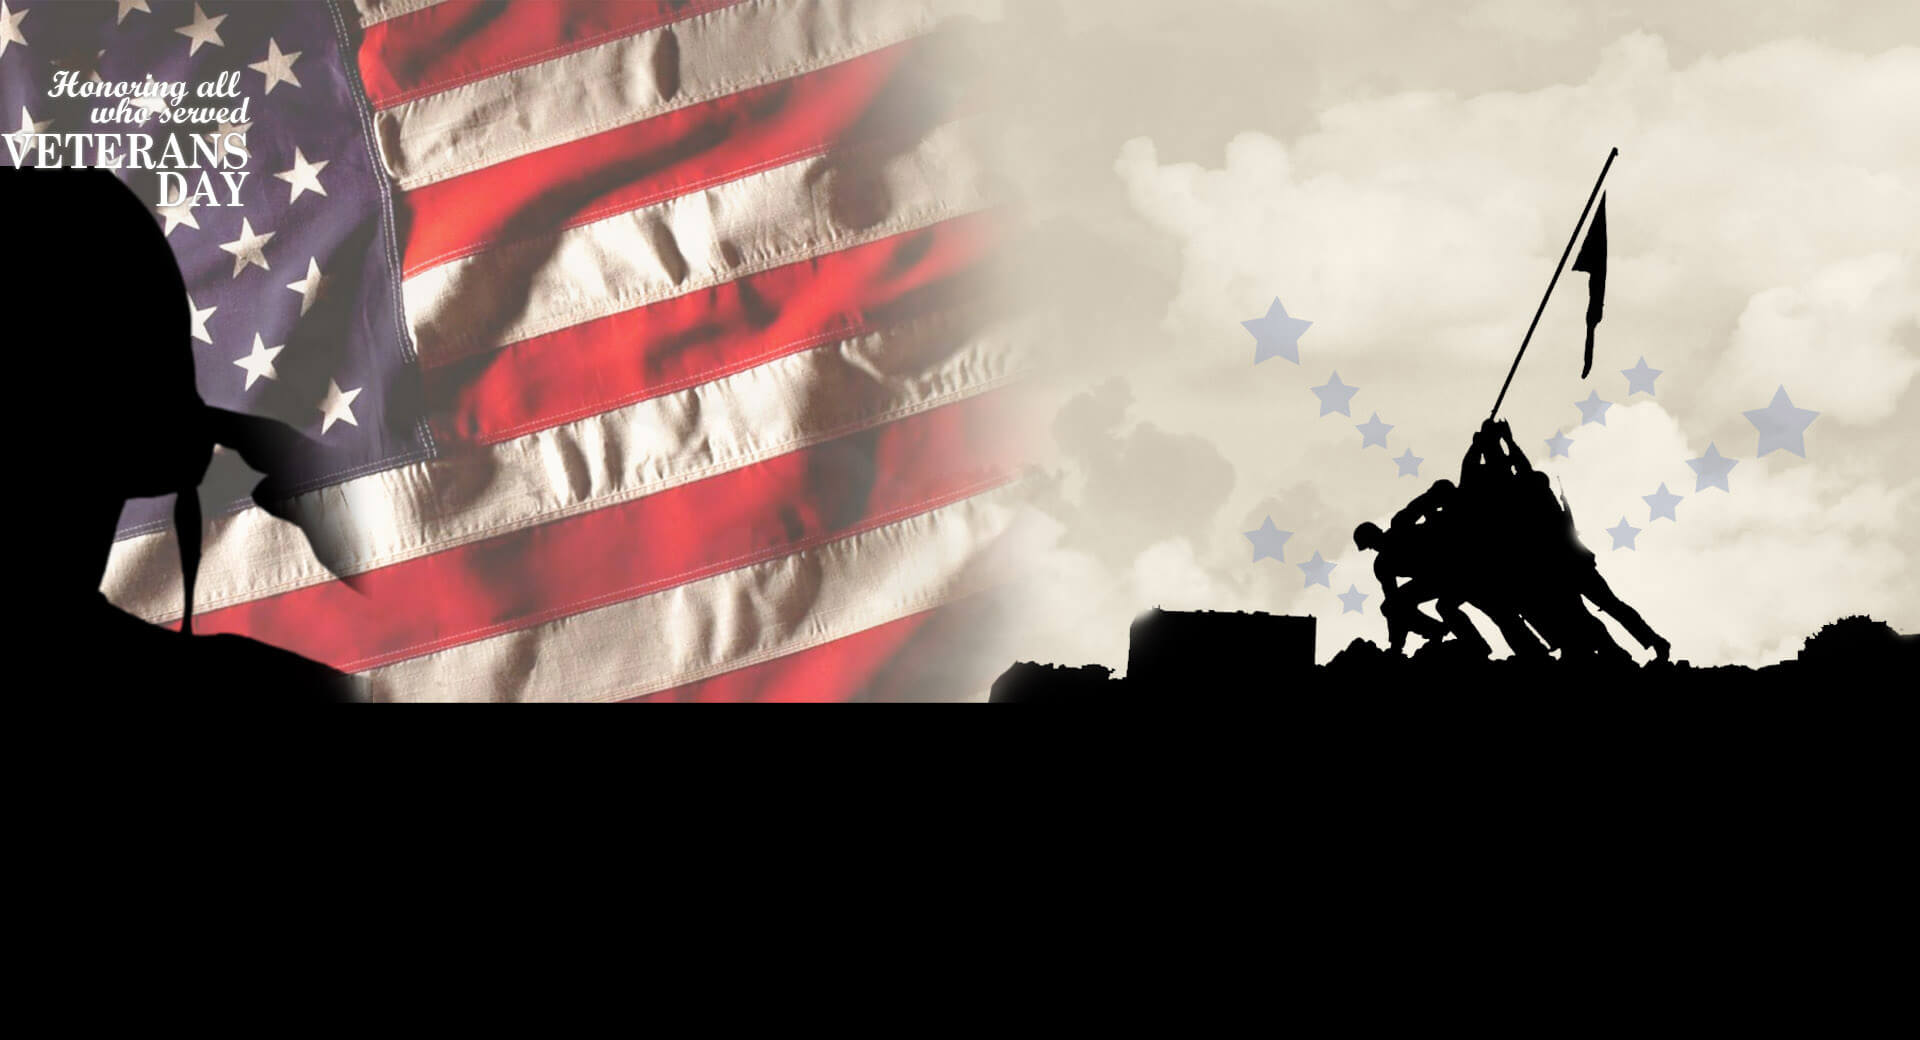 veterans day america usa honoring all hd wallpaper